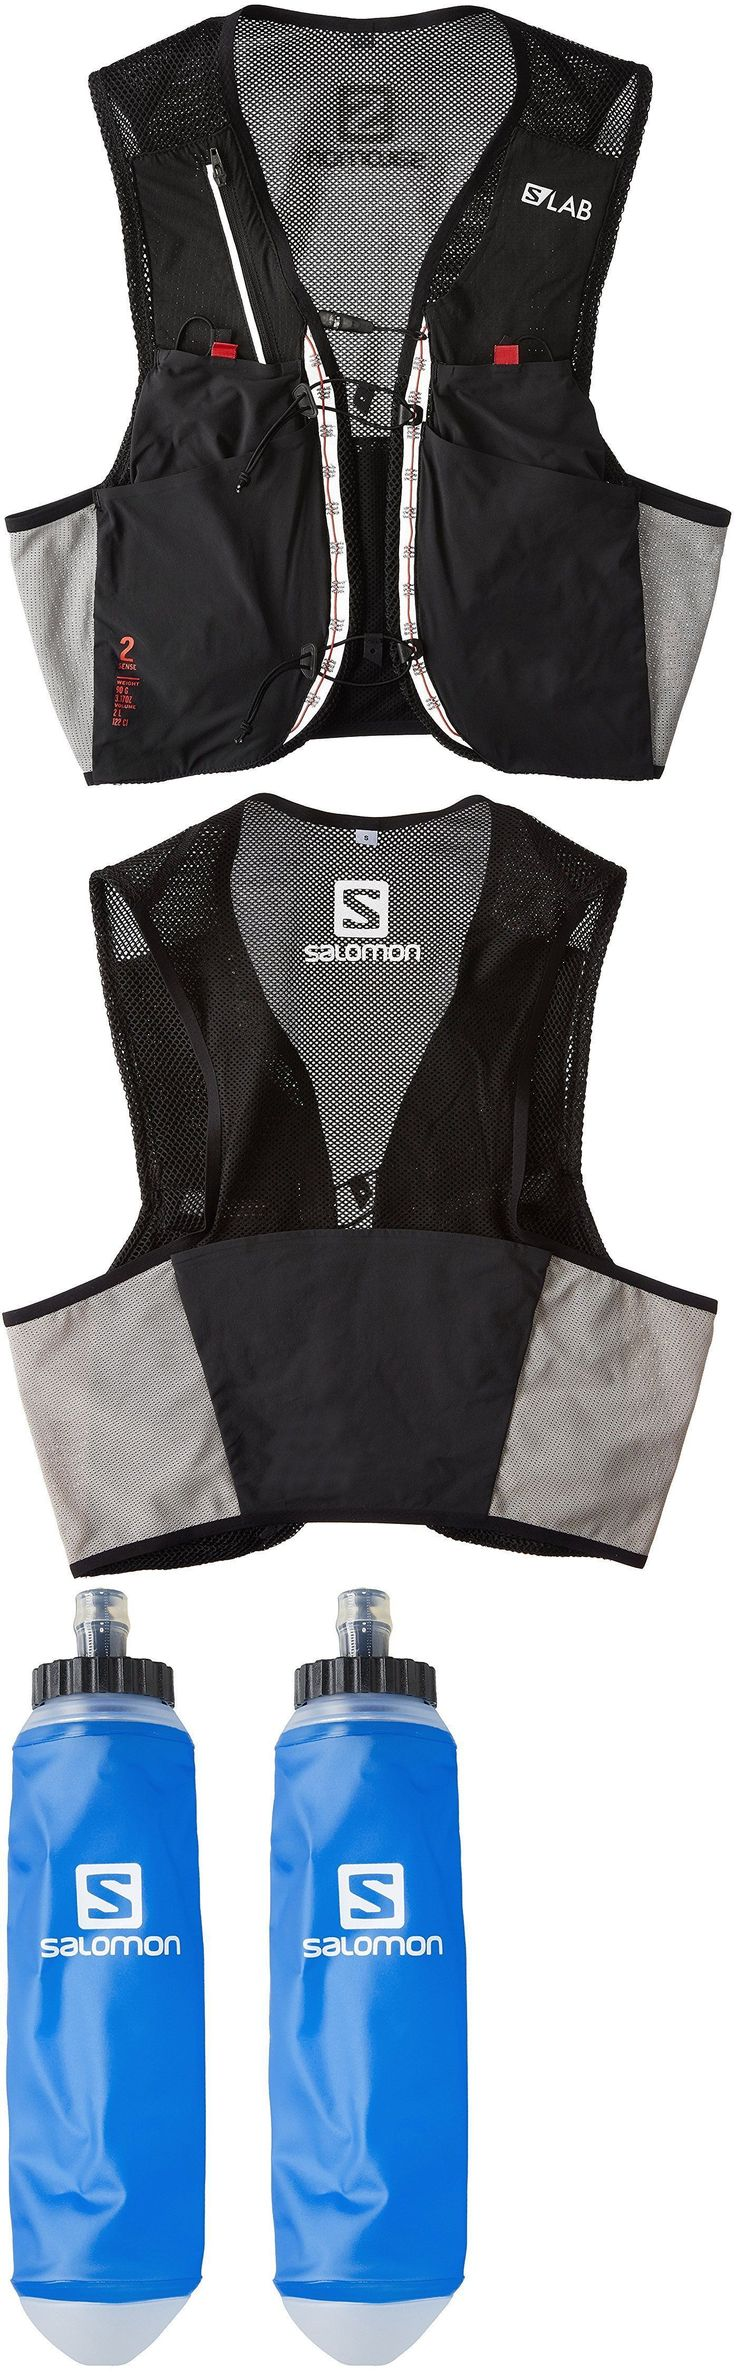 Other Unisex Clothing and Accs 167905: New! Salomon S-Lab Sense 2 Set Running Vest 393818 Color Black Size Small -> BUY IT NOW ONLY: $99.95 on eBay!